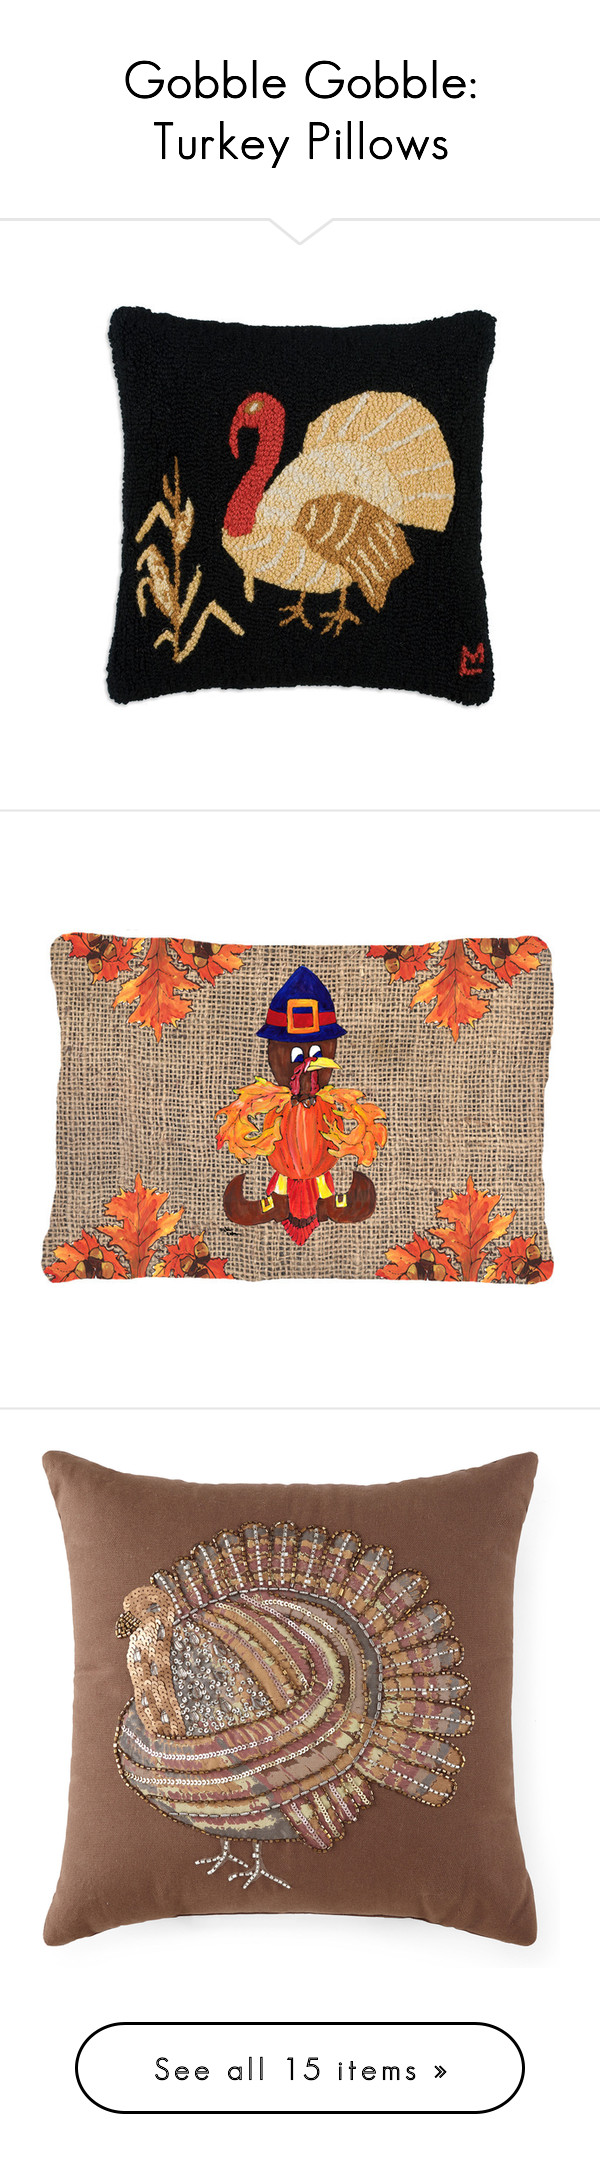 """""""Gobble Gobble: Turkey Pillows"""" by polyvore-editorial ❤ liked on Polyvore featuring turkeypillows, home, outdoors, outdoor decor, outdoor thanksgiving decor, fleur de lis outdoor decor, fleur de lis garden decor, home decor, throw pillows and jcpenney home"""